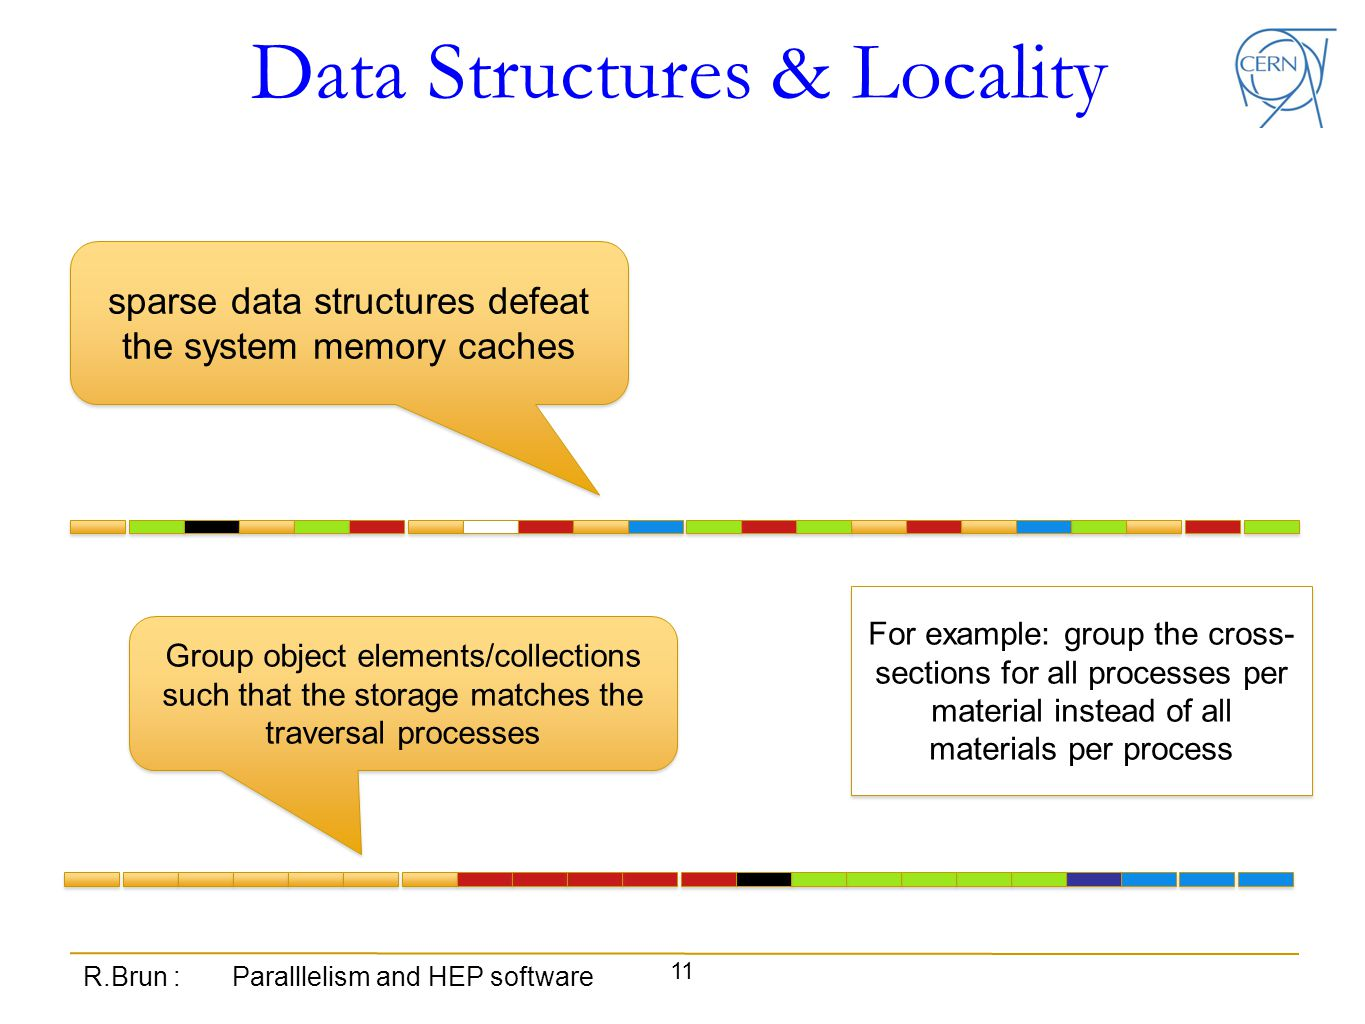 Data Structures & Locality R.Brun : Paralllelism and HEP software 11 sparse data structures defeat the system memory caches Group object elements/collections such that the storage matches the traversal processes For example: group the cross- sections for all processes per material instead of all materials per process